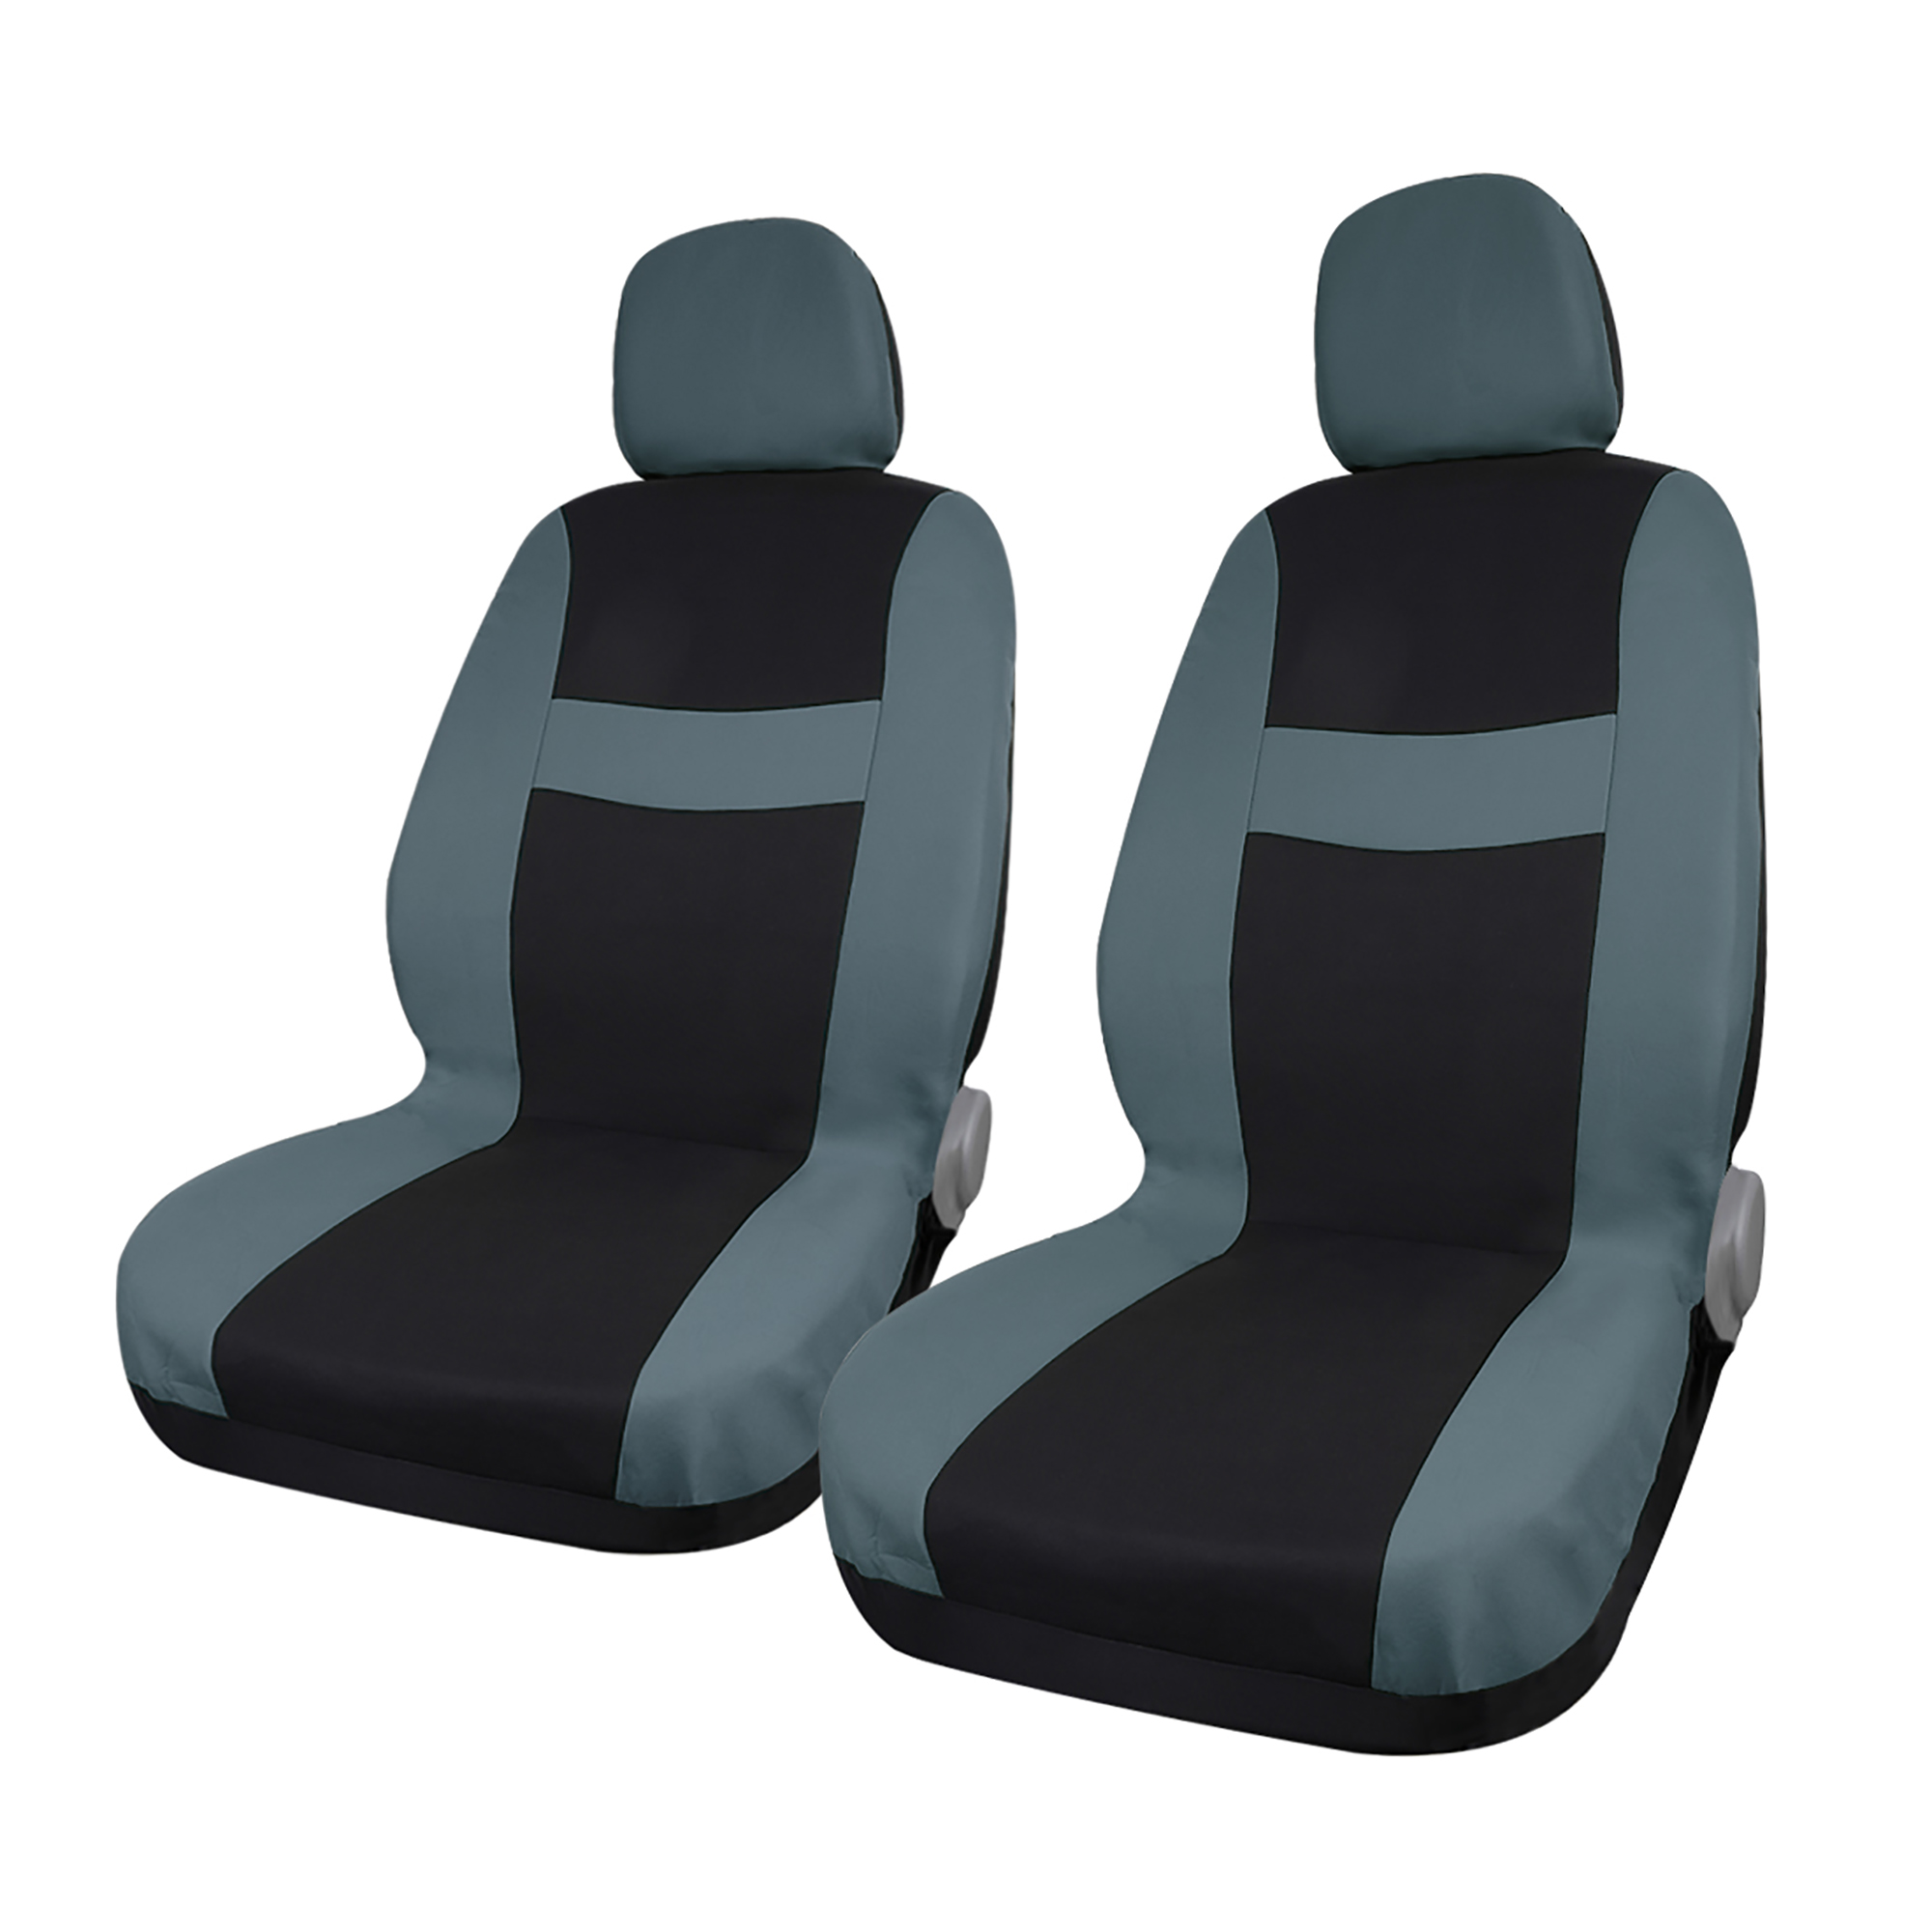 8 piece Gray Black Car Seat Covers with Headrest for Auto Truck